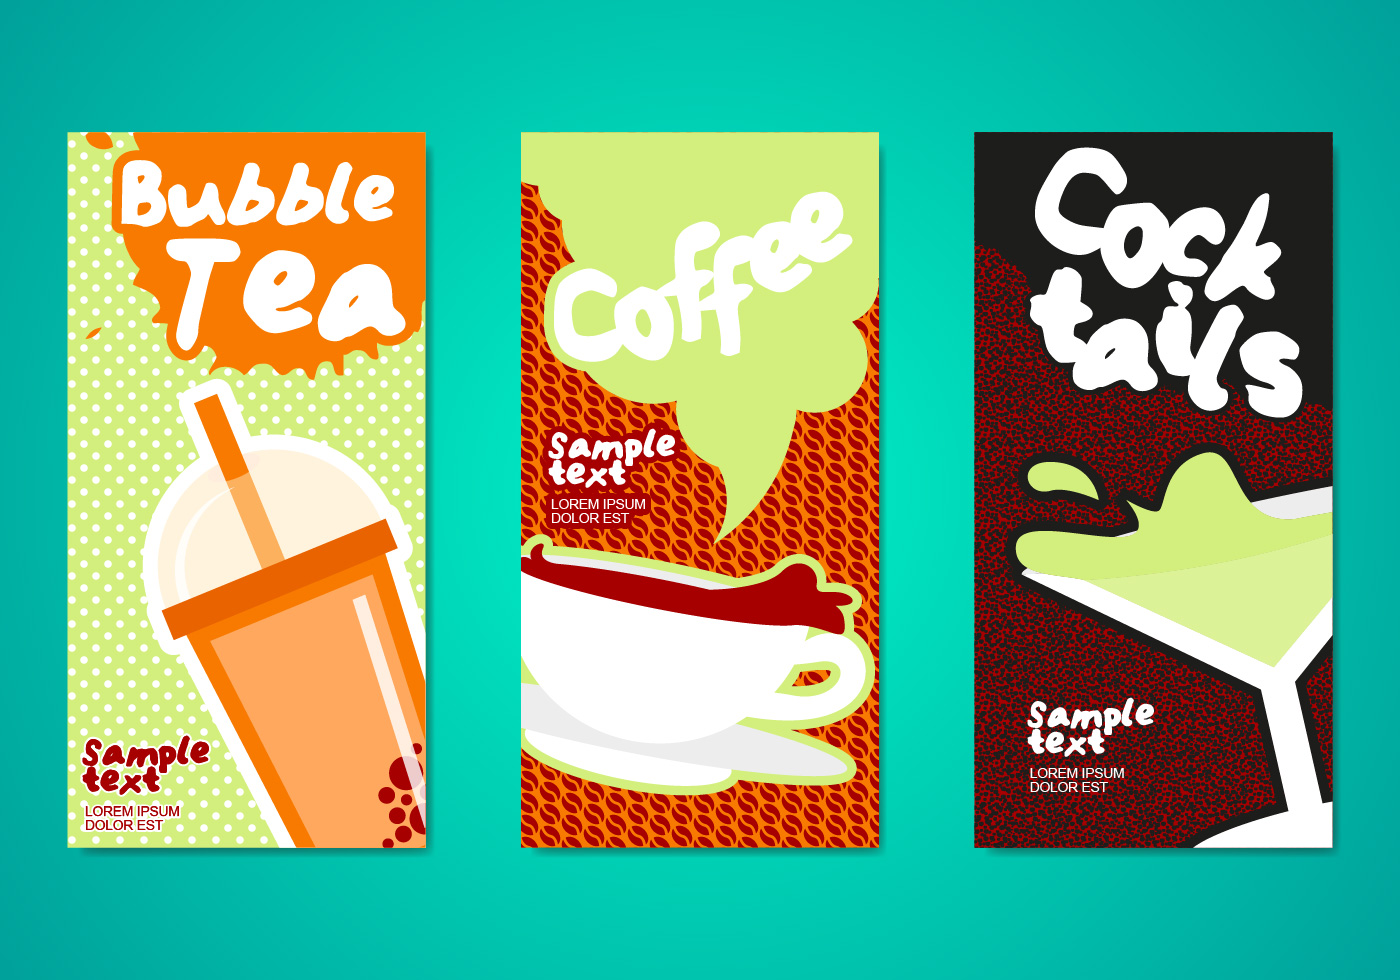 Bubble Tea Drinks Flyers Template - Download Free Vector Art, Stock  Graphics & Images